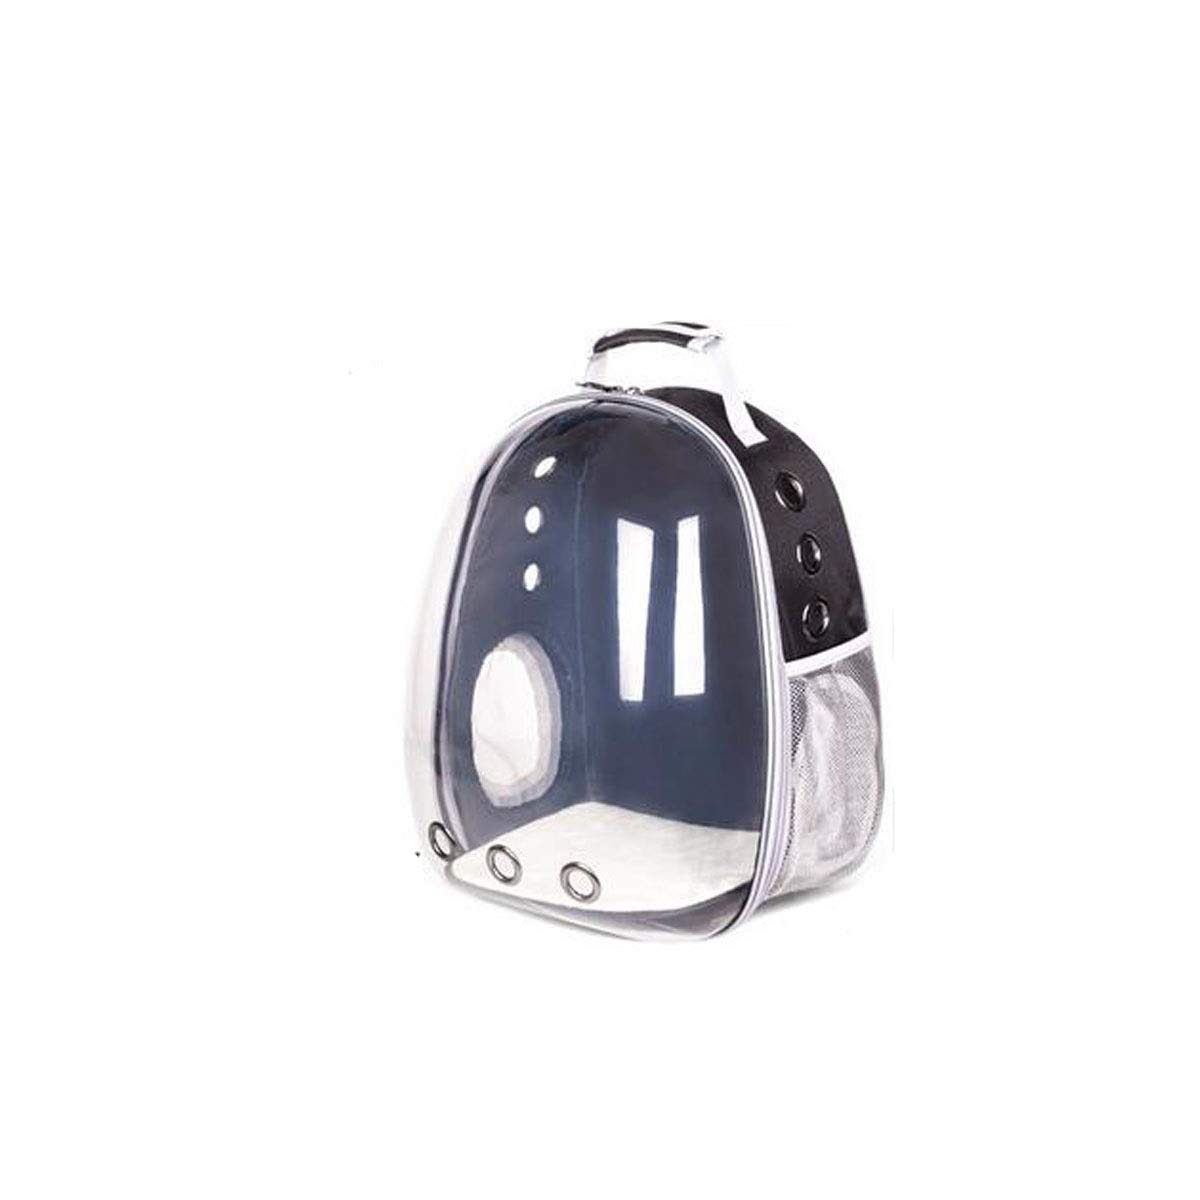 Black2 Guyuexuan Transparent Space Capsule Pet Bag, Pet Carrier Suitable For Outdoor Travel, Hiking, Camping,Black, Pink, Red Pet Travel Essentials (color   Red2)